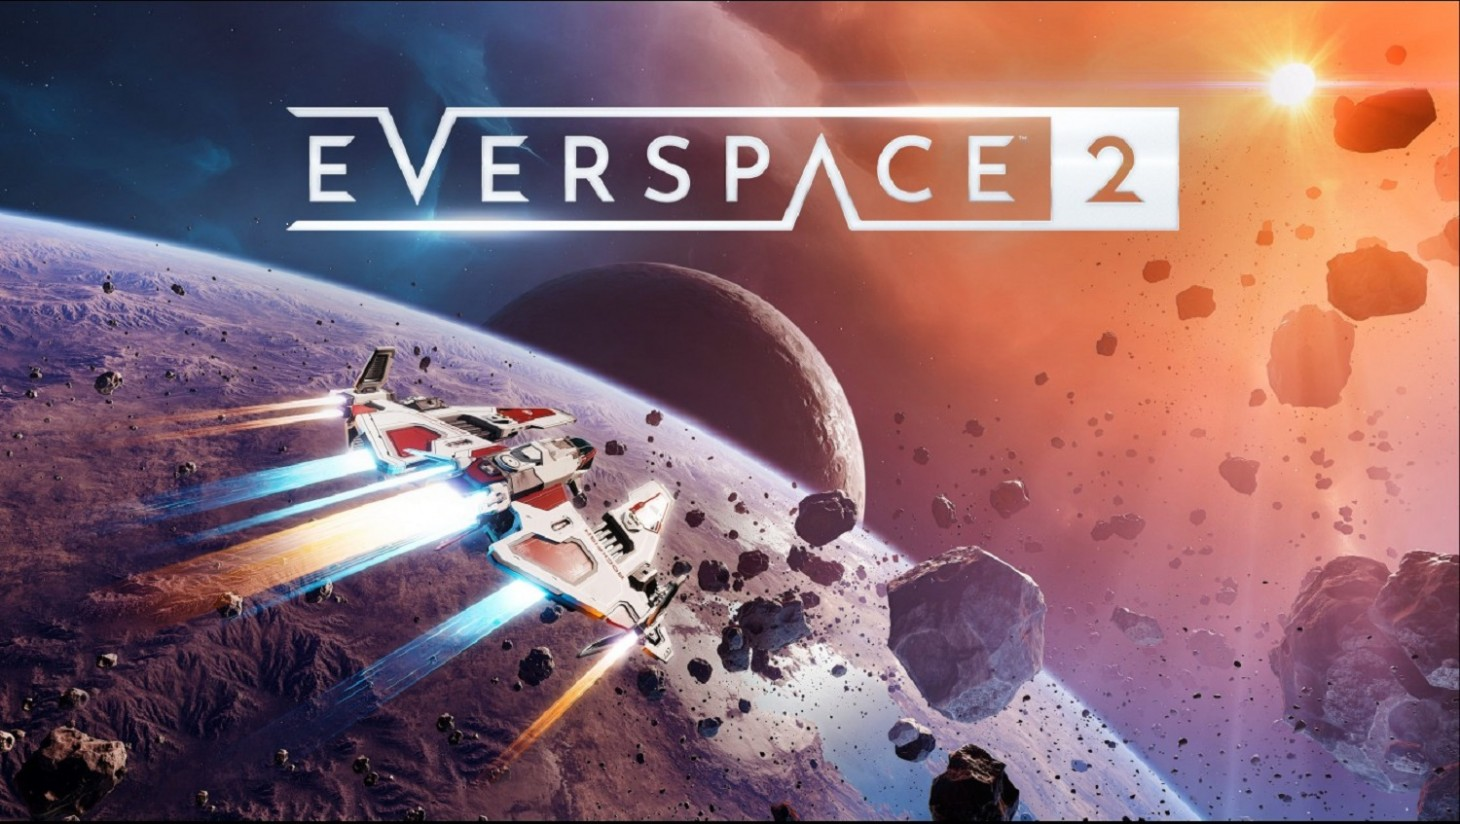 Single Player Space Shooter Everspace 2 Revealed At